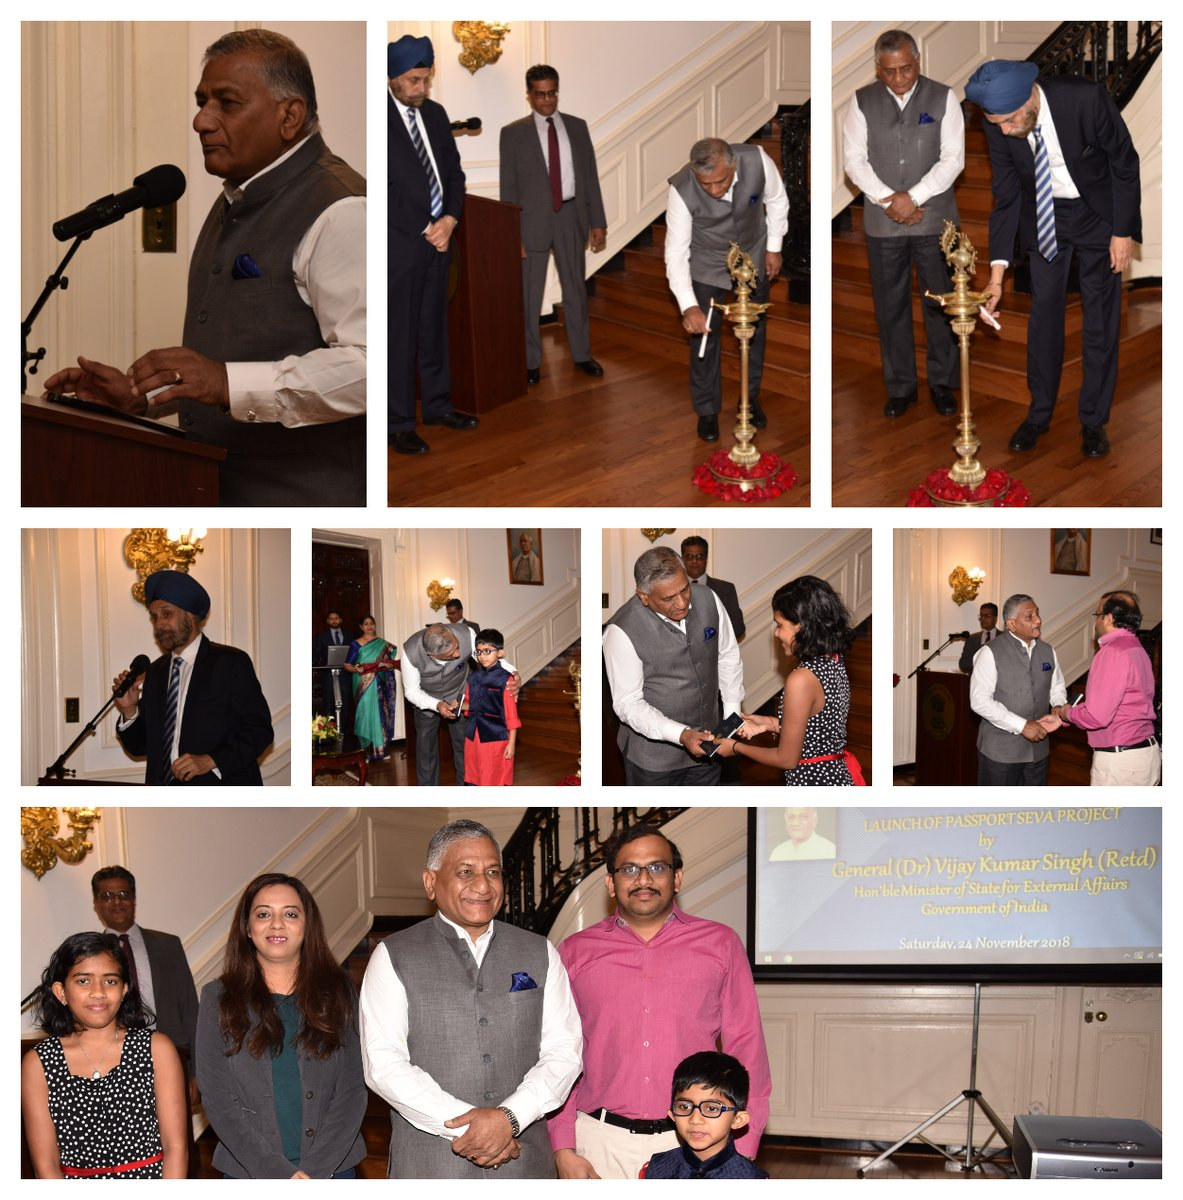 Inauguration of Passport Seva Project by Minister of State for External Affairs V K Singh ai Indian Embassy, Washington DC (Photo courtesy: Indian Embassy, Washington DC